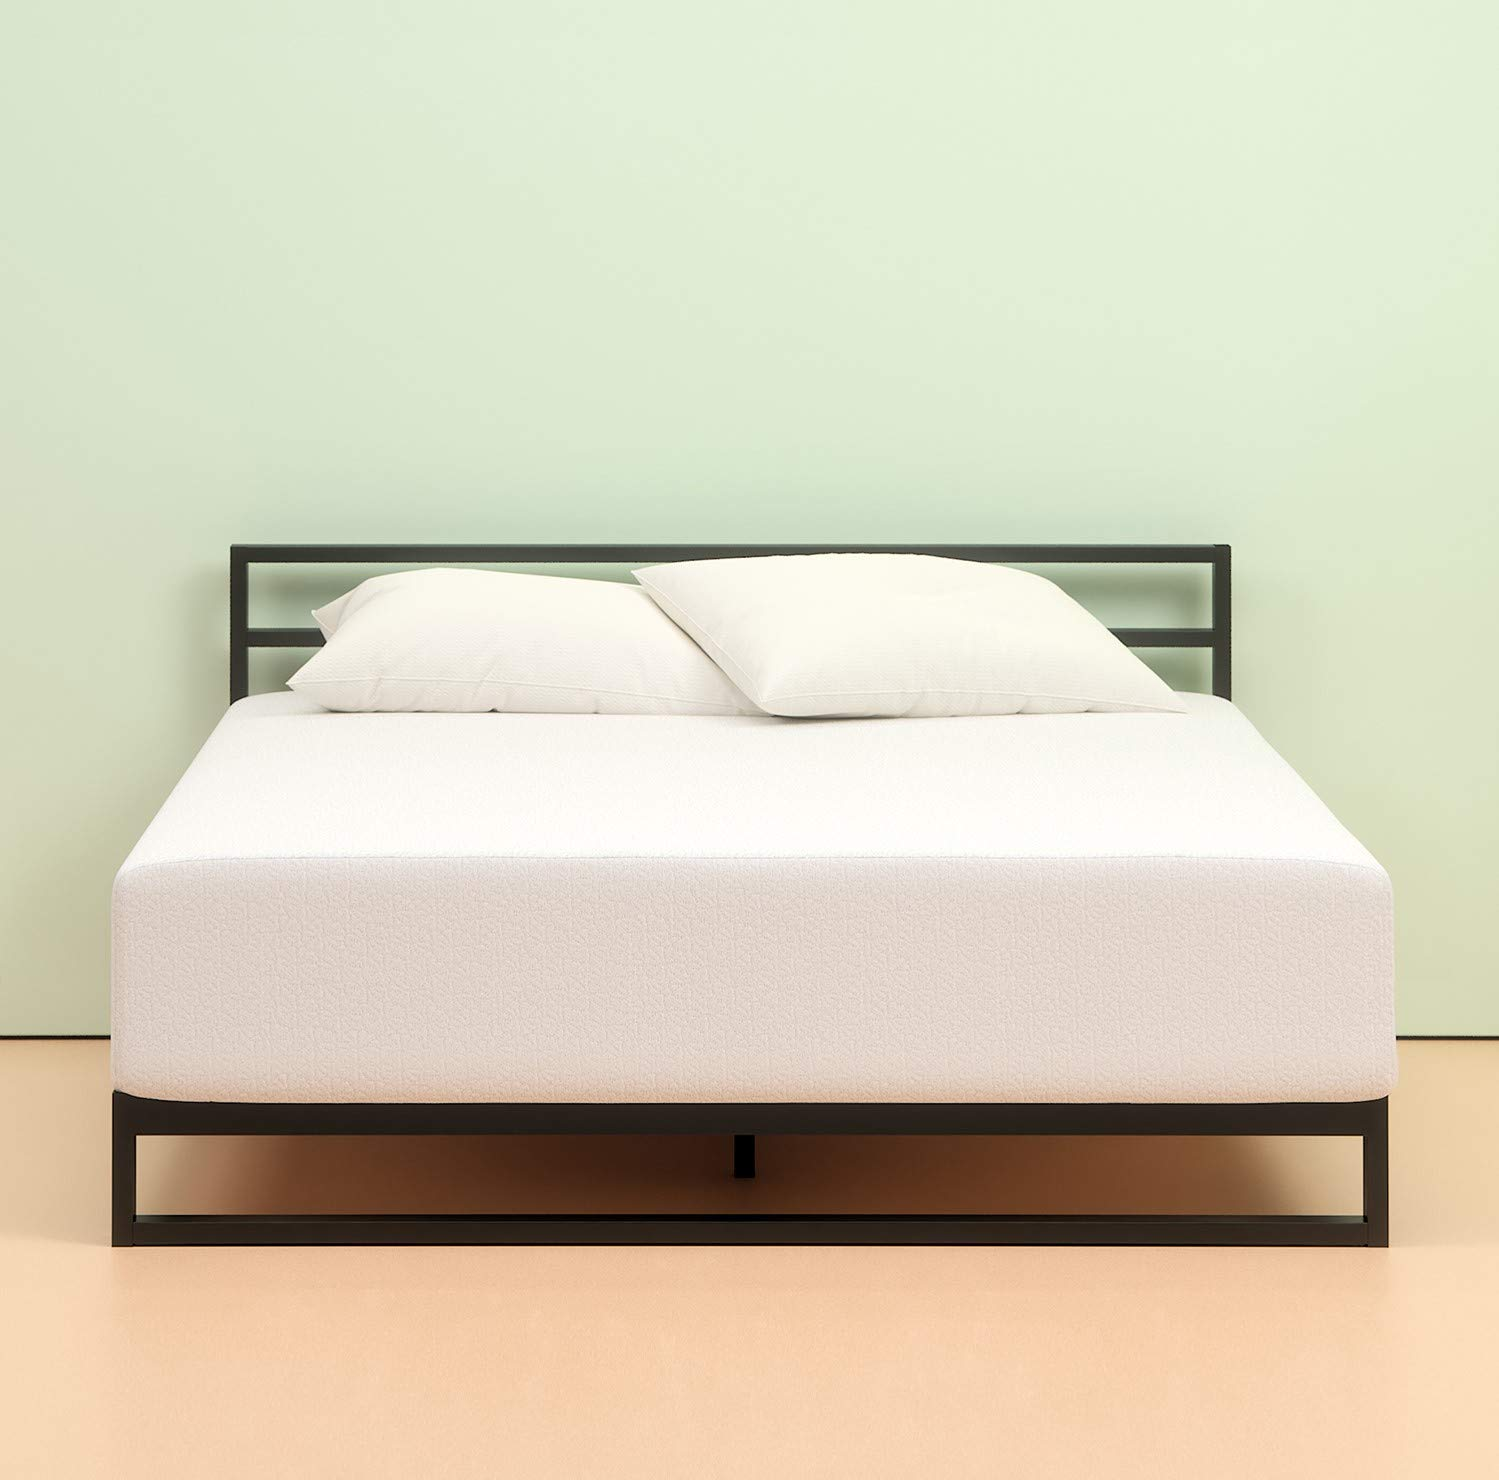 Zinus Green Tea Best Cheap Mattress Review by www.snoremagazine.com